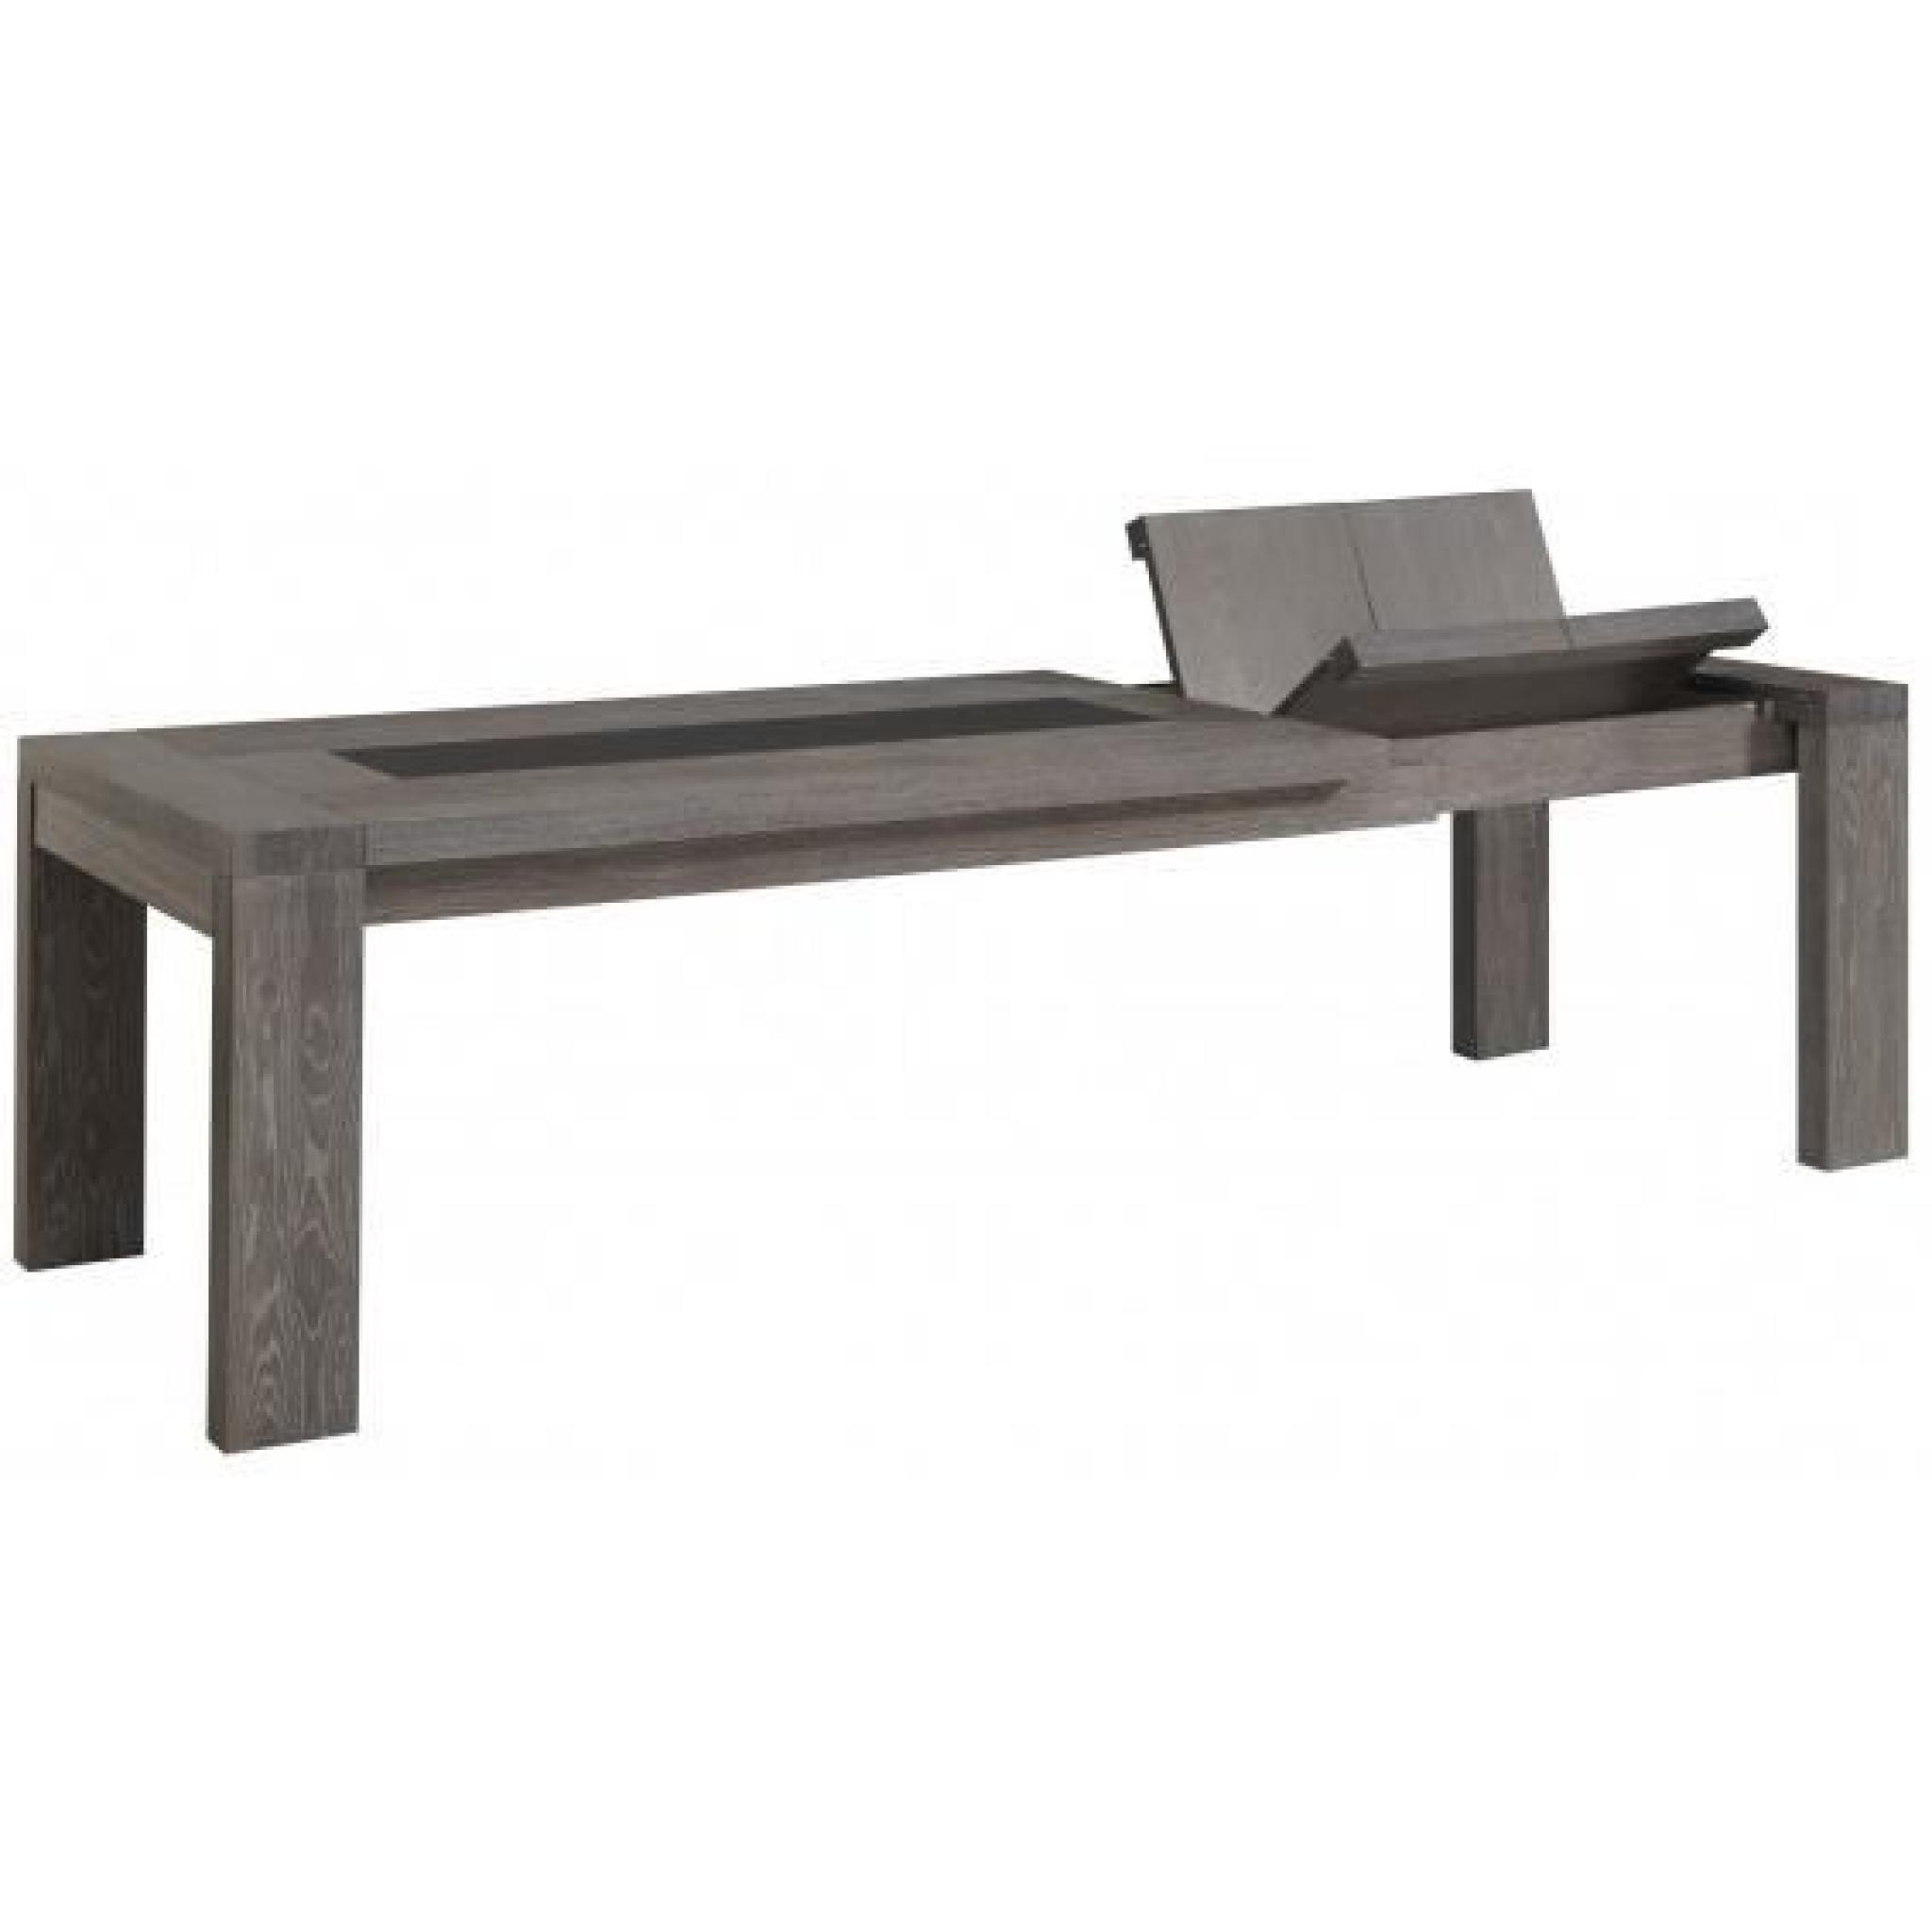 Dayton table rectangulaire avec allonges achat vente for Table salle a manger rectangulaire extensible